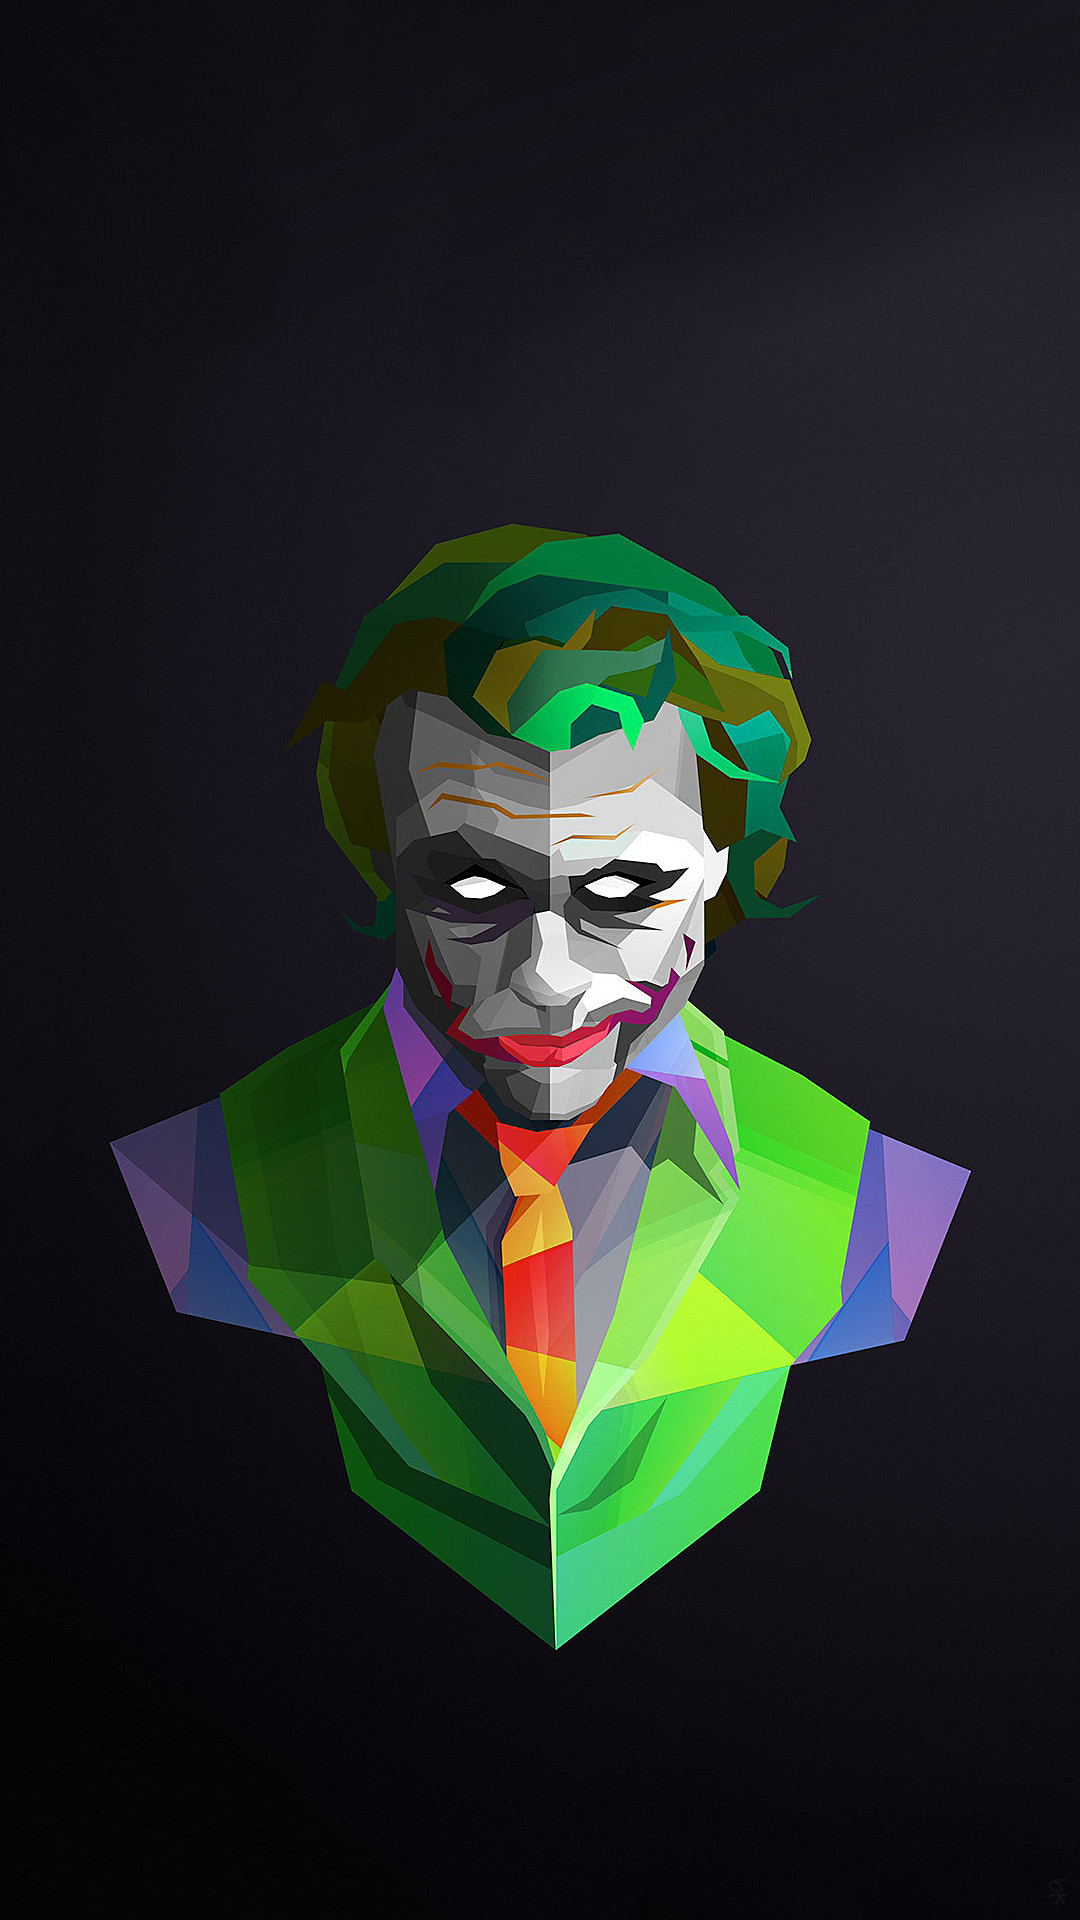 Joker iPhone 6 Wallpaper 79 images 1080x1920